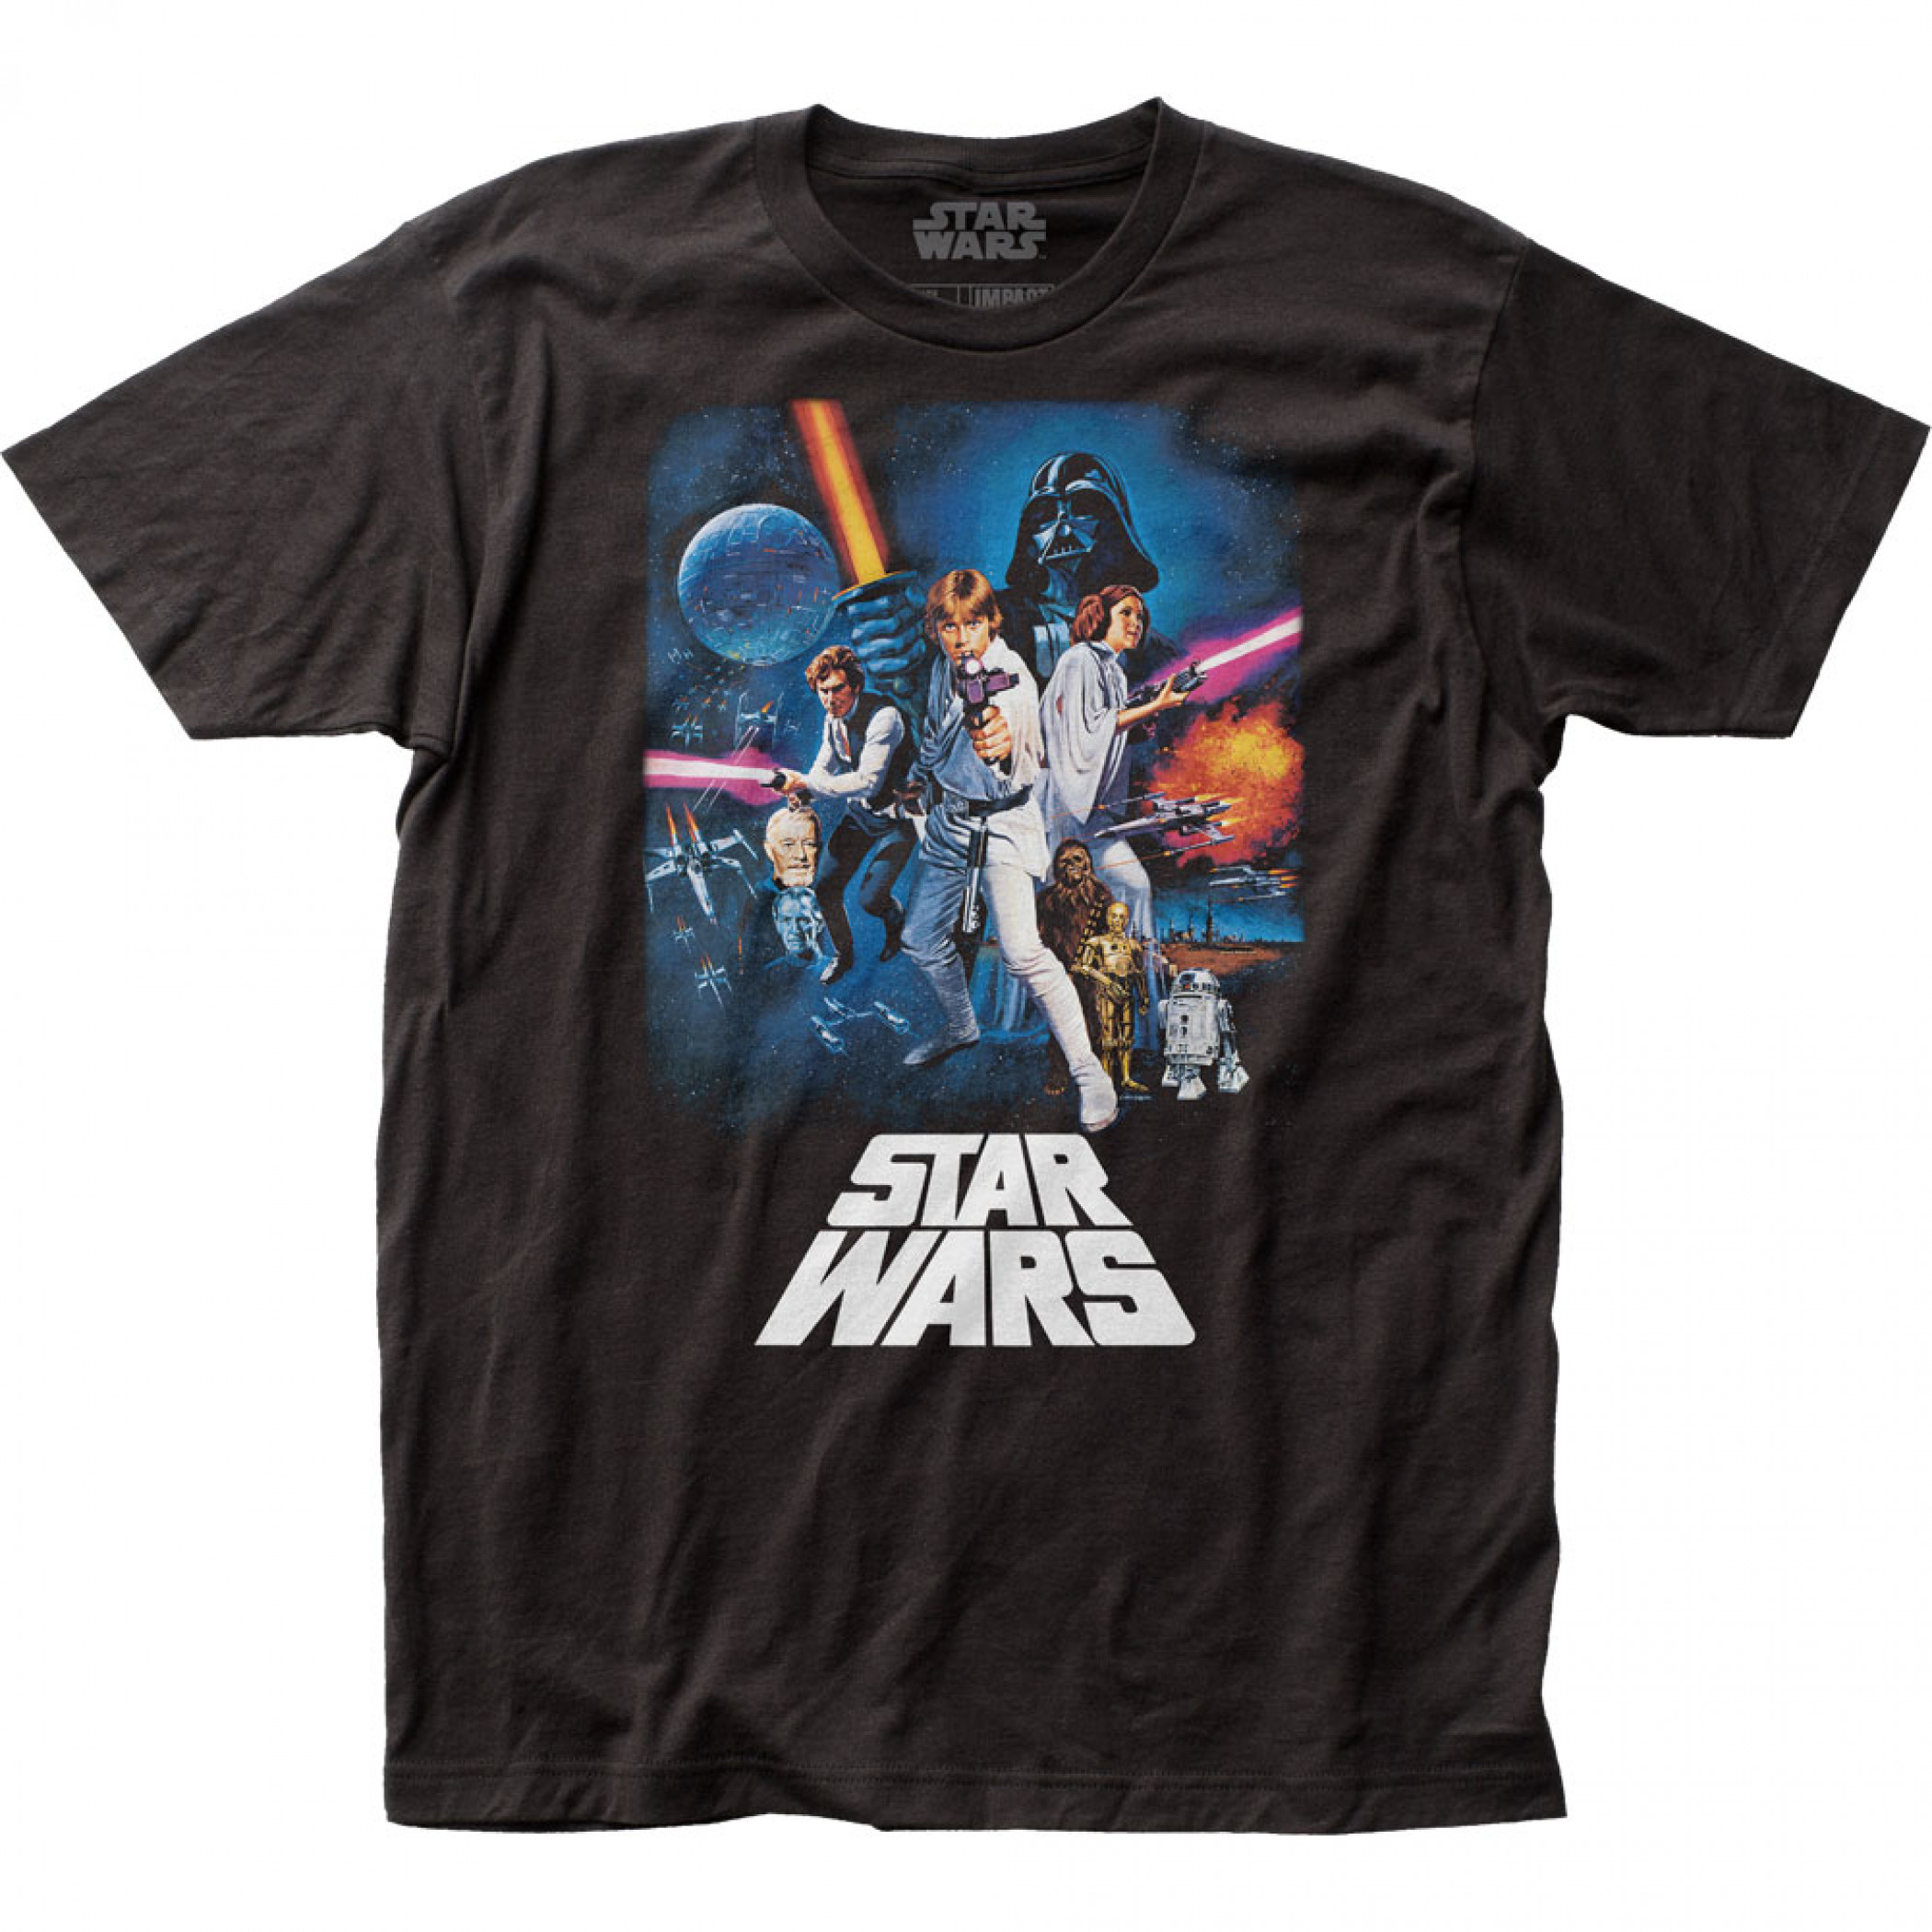 Star Wars A New Hope Movie Poster T-Shirt